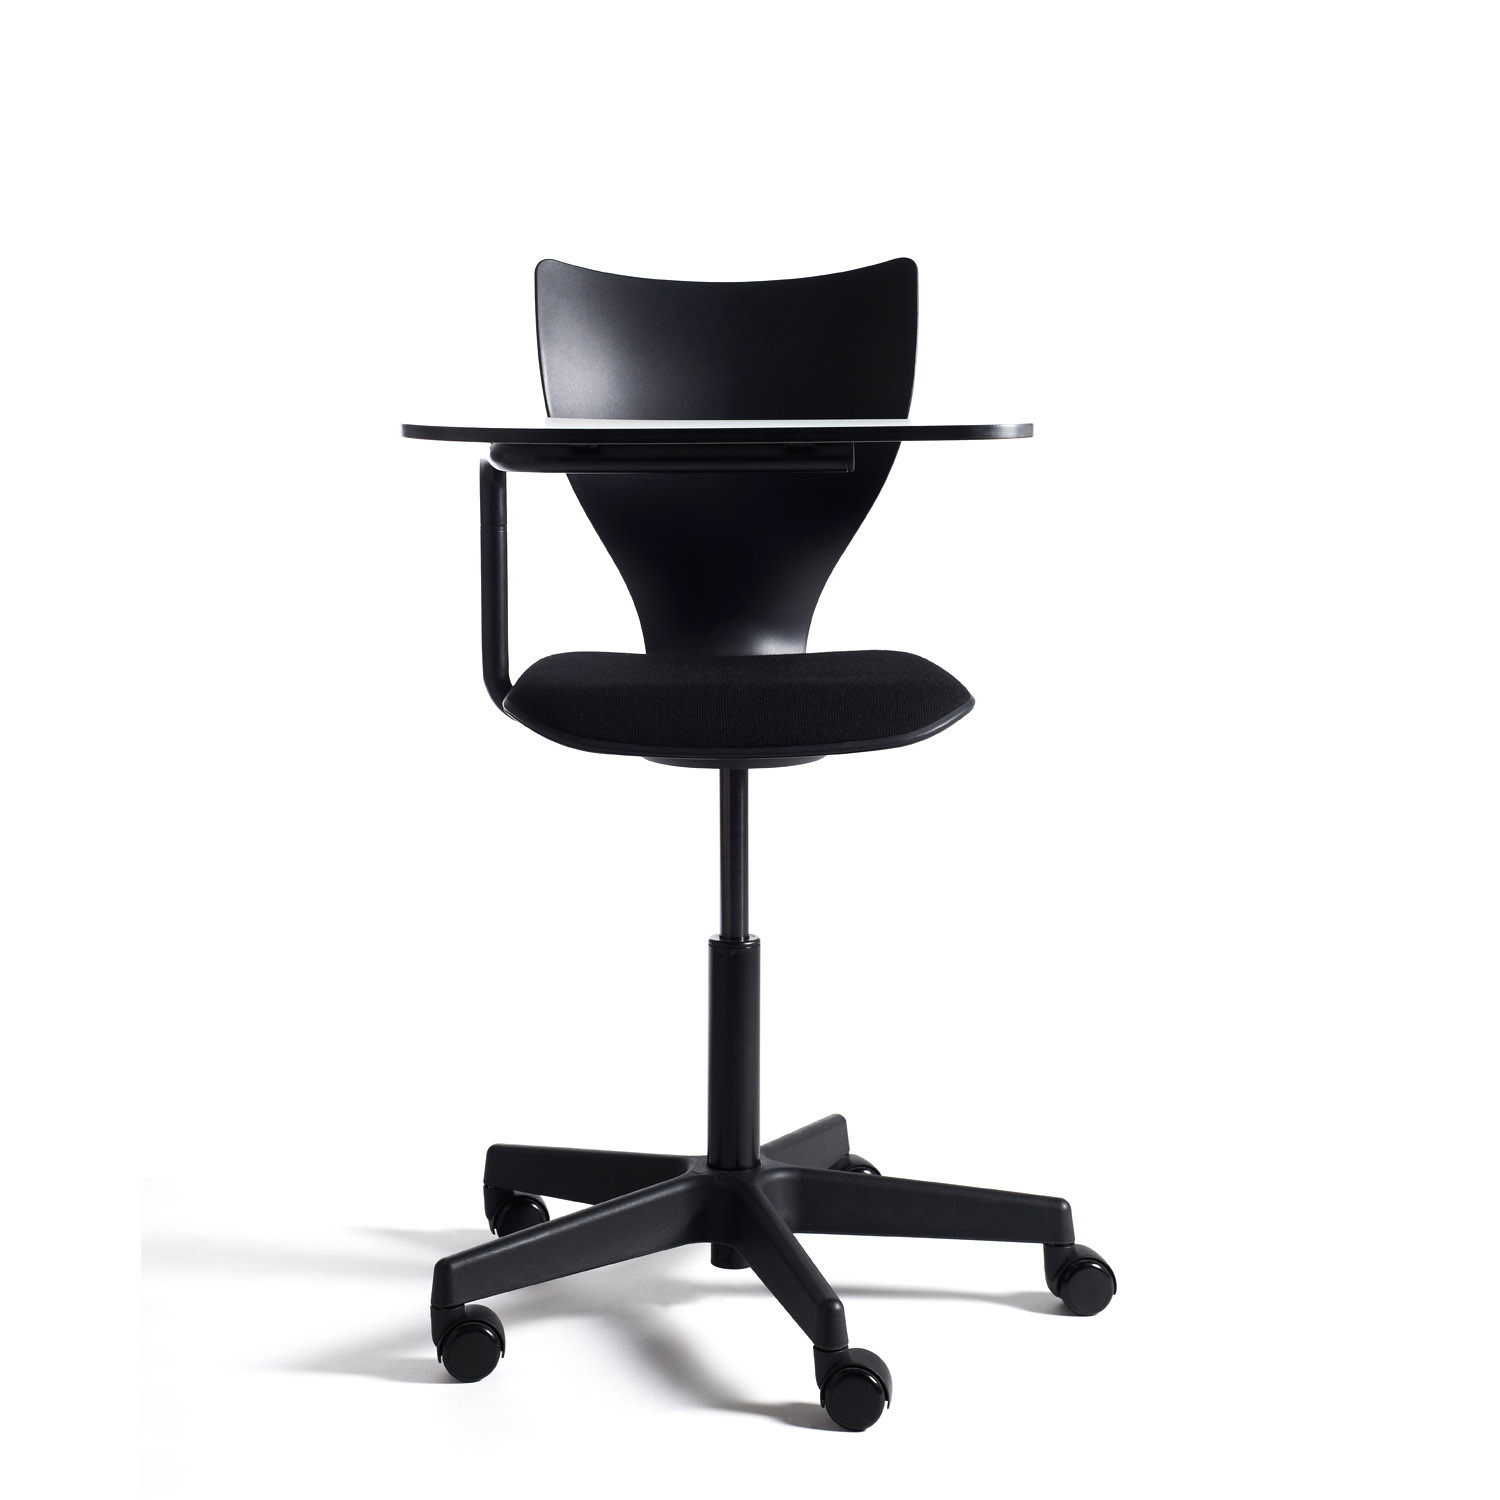 Cobra Chair with Tablet